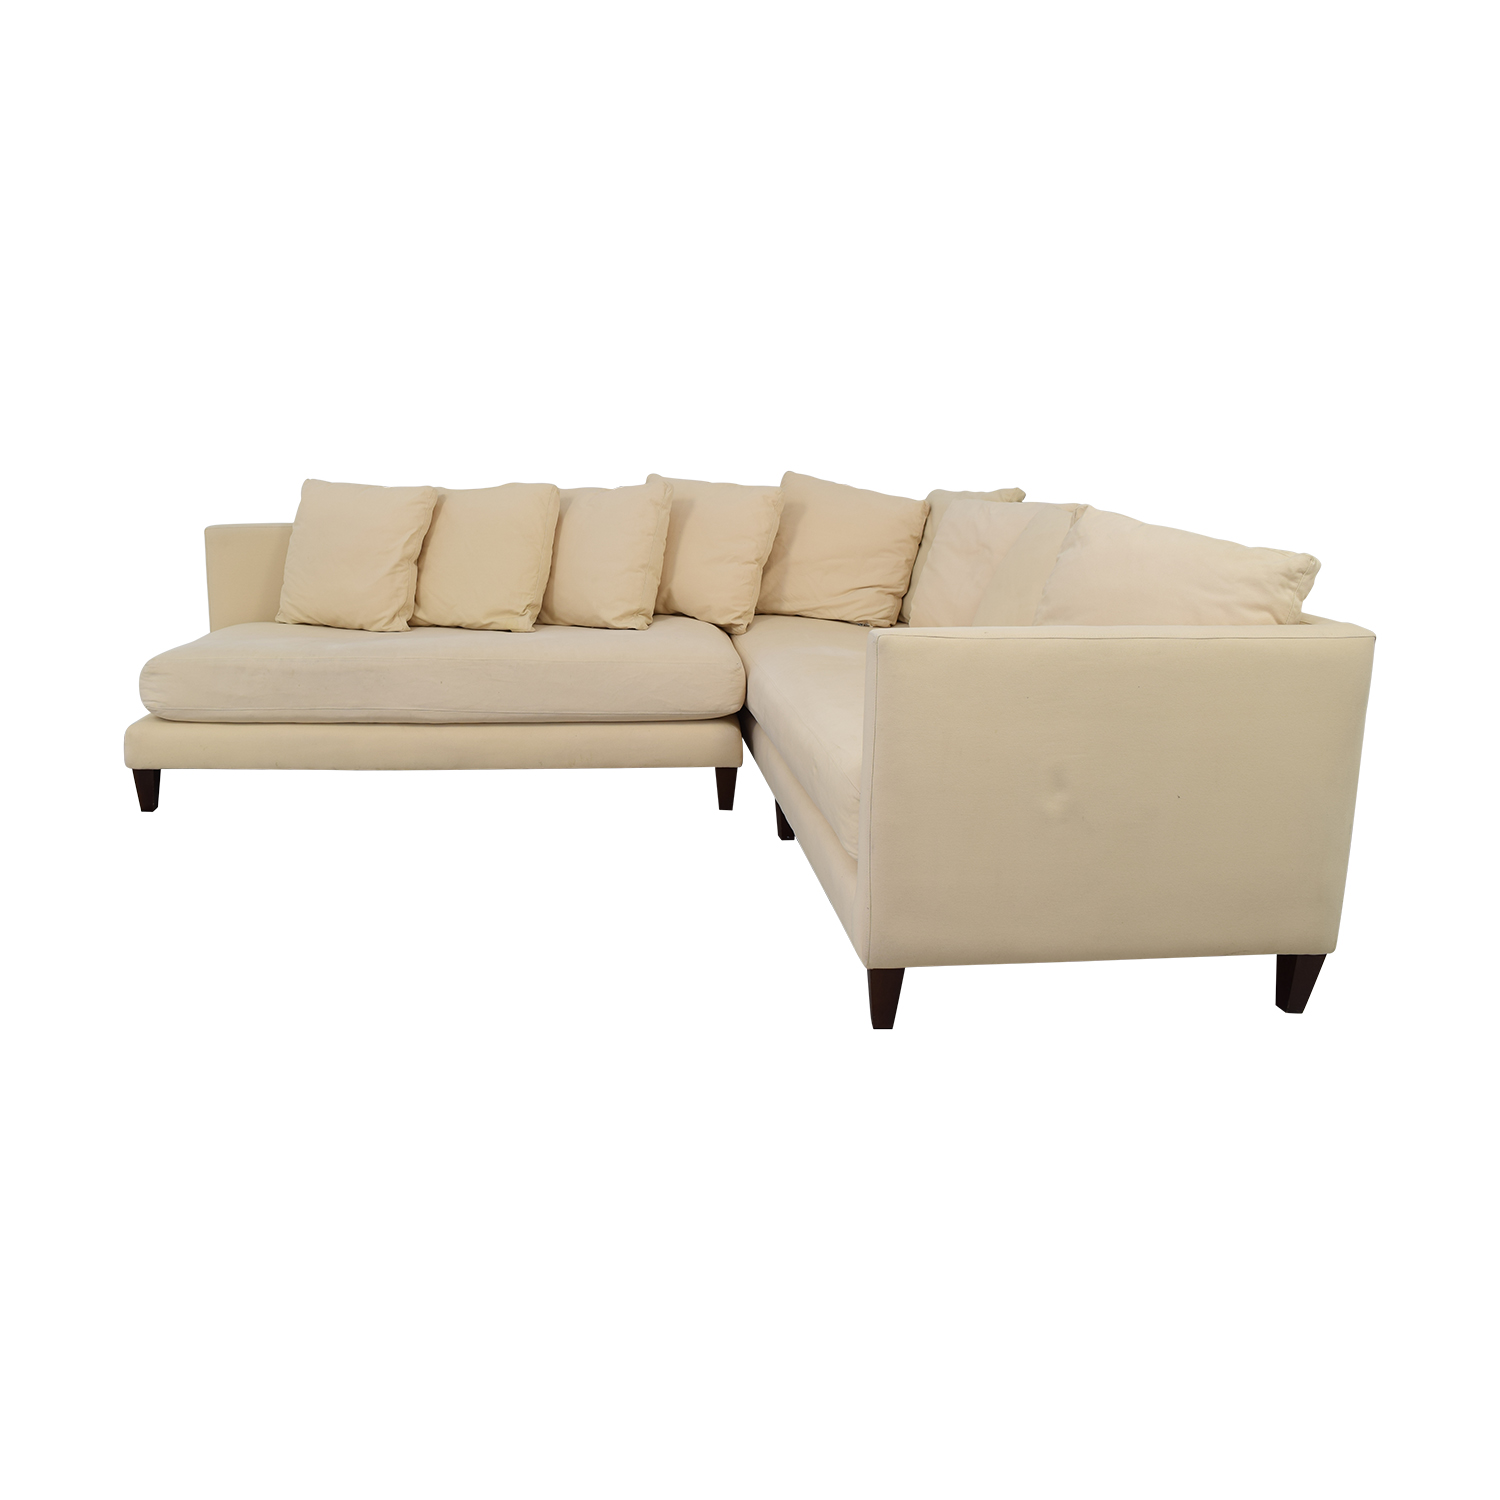 Crate & Barrel Crate & Barrel Sectional on sale